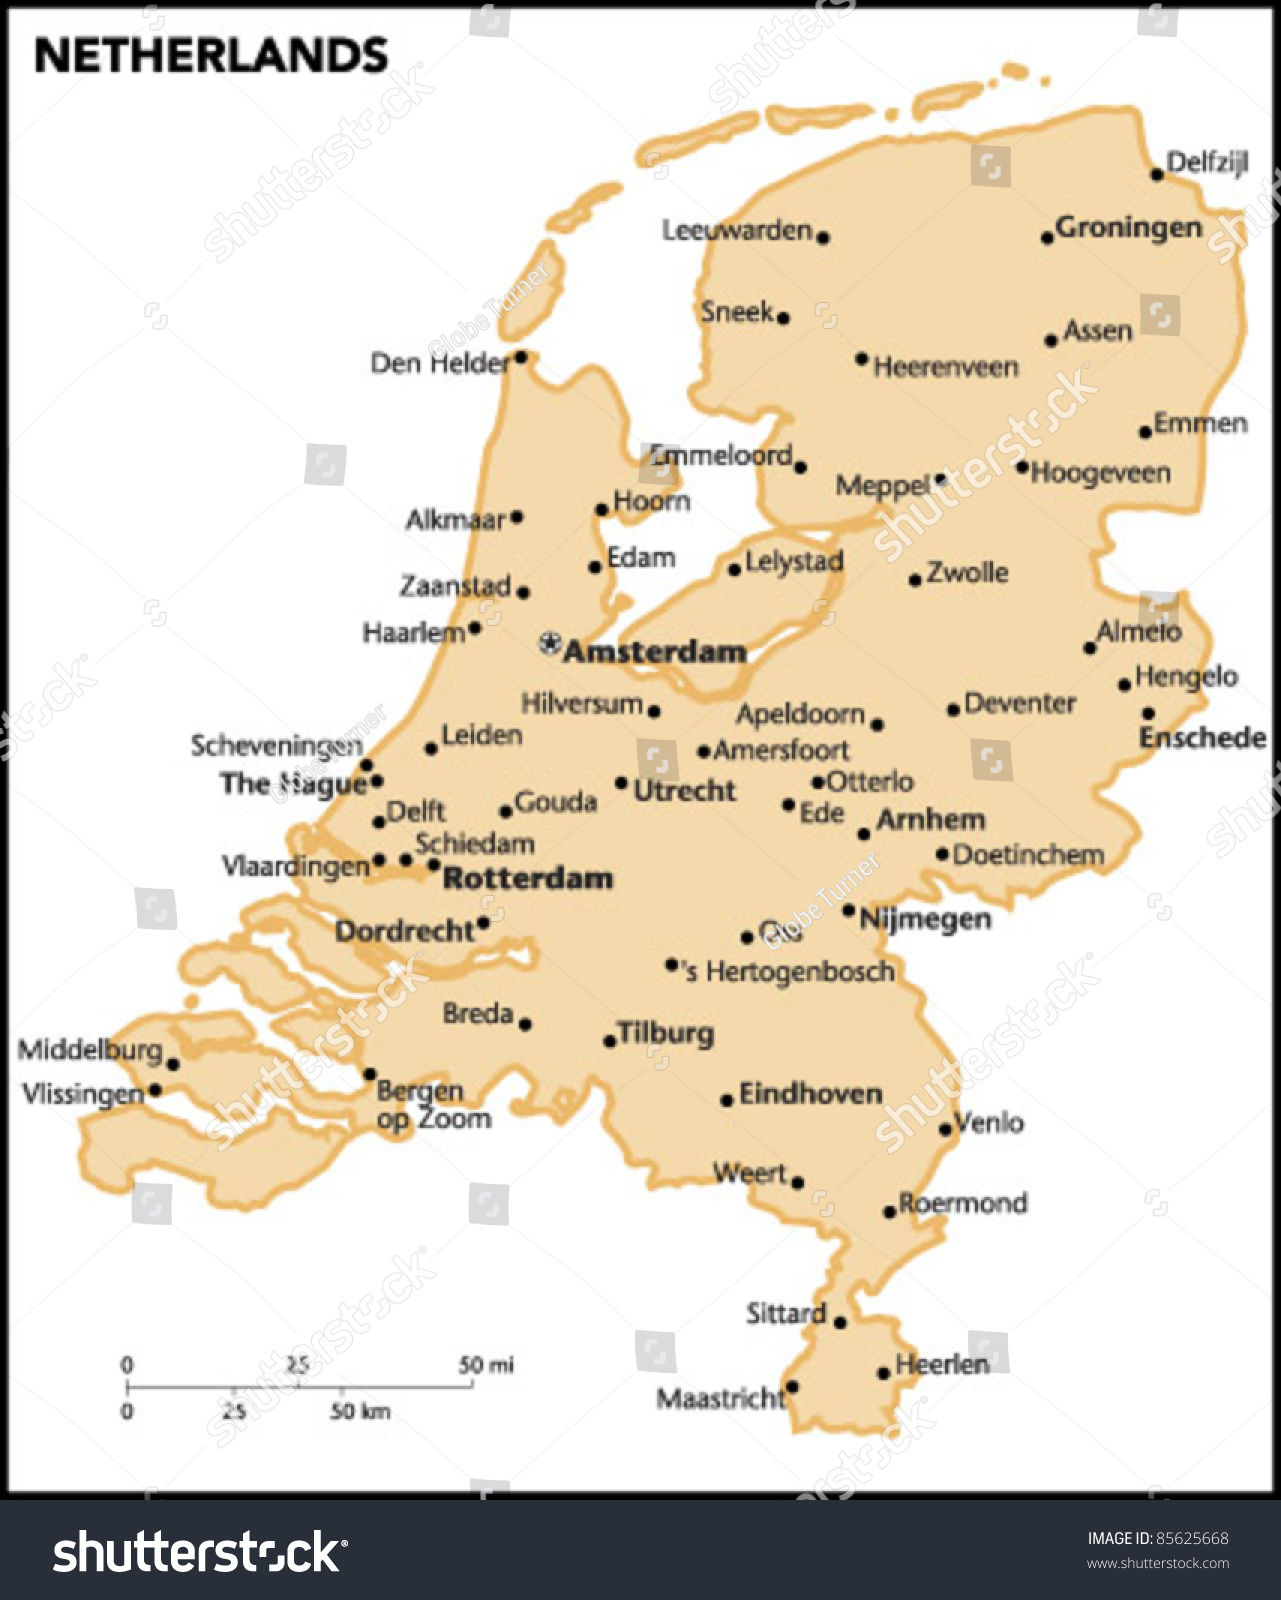 Netherlands Country Map Stock Vector HD Royalty Free 85625668